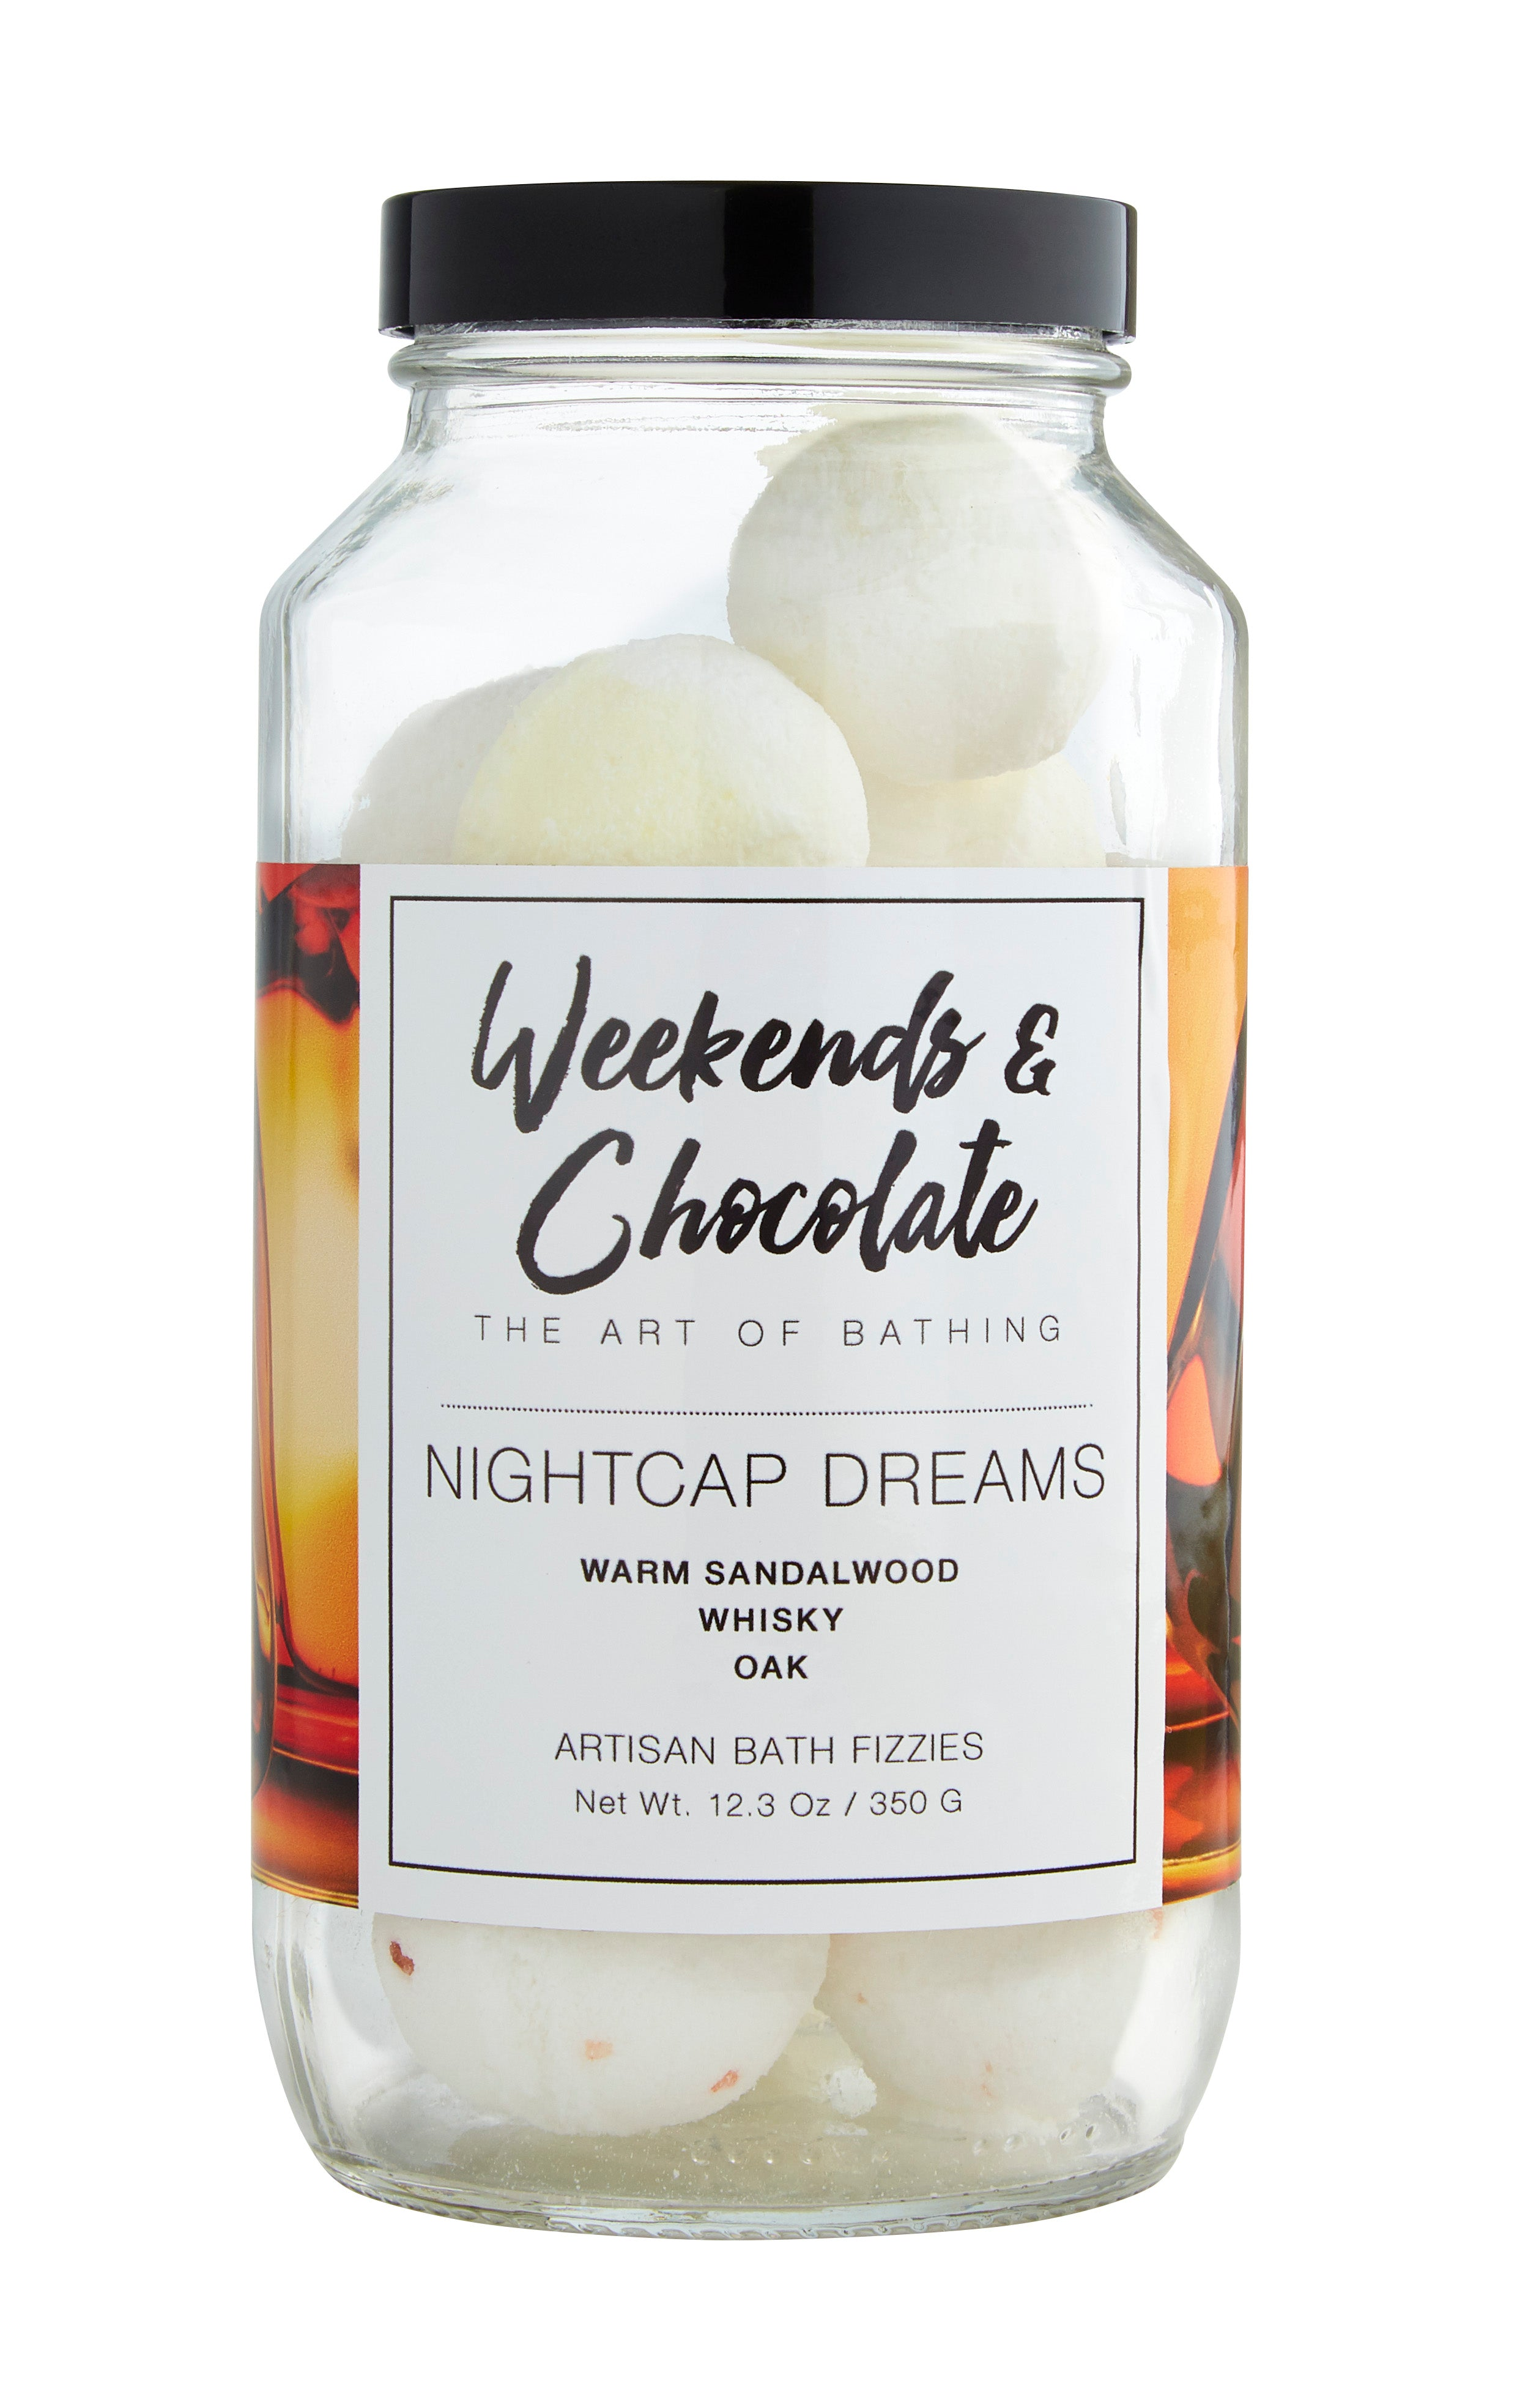 Nightcap Dreams Bath Fizzies